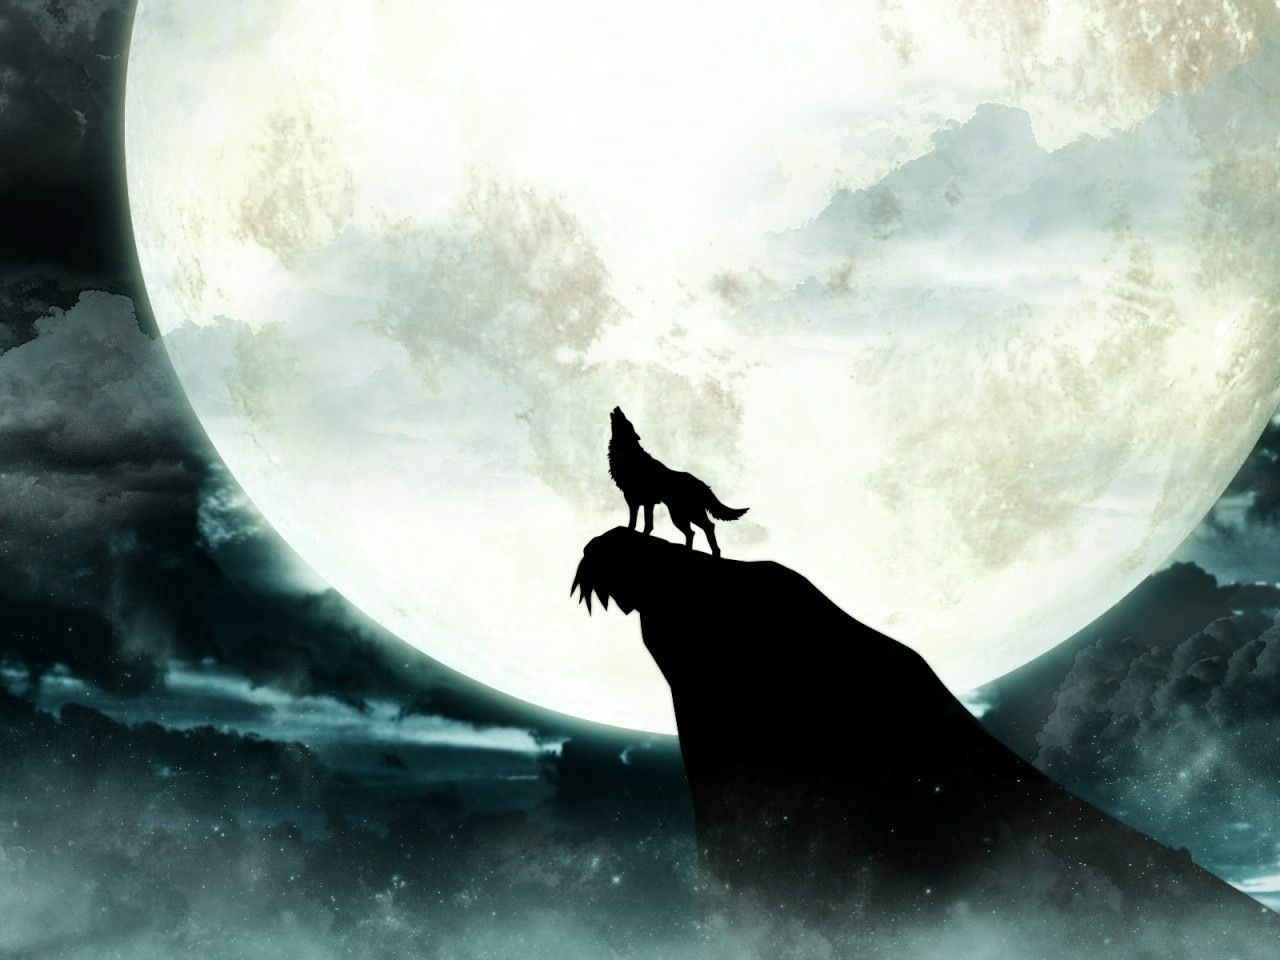 wolf howling at the moon wallpapers - wallpaper cave | best games